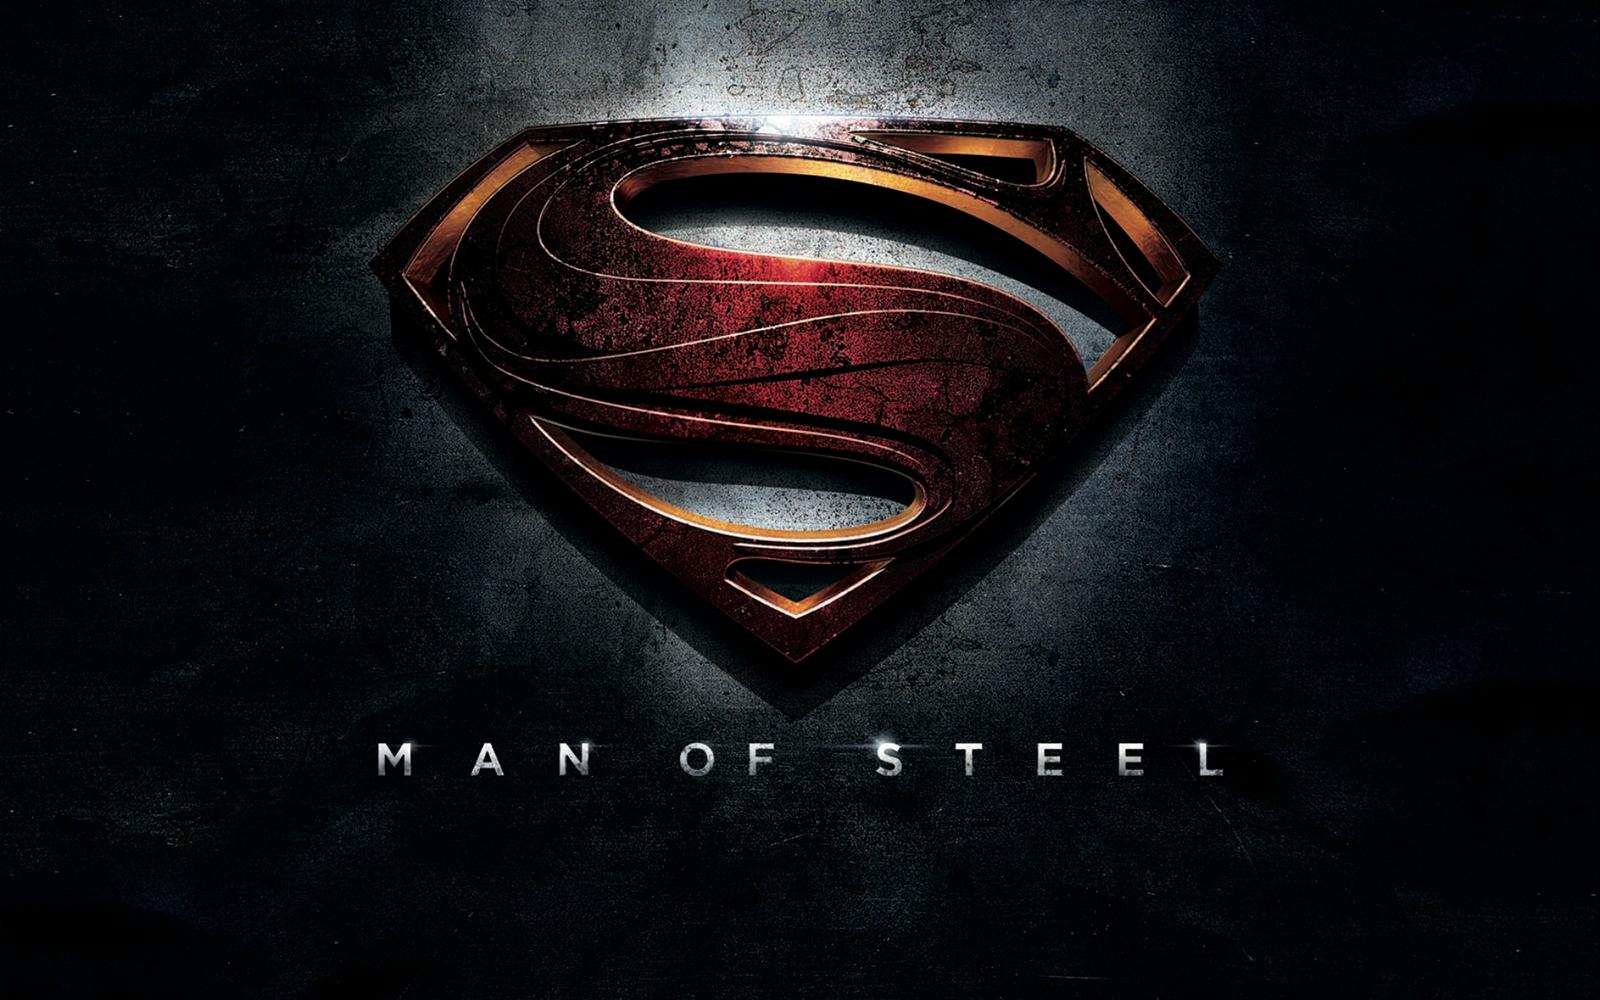 Supeman-Man-of-Steel-Logo-Hi-Res.jpg (1600×1000)